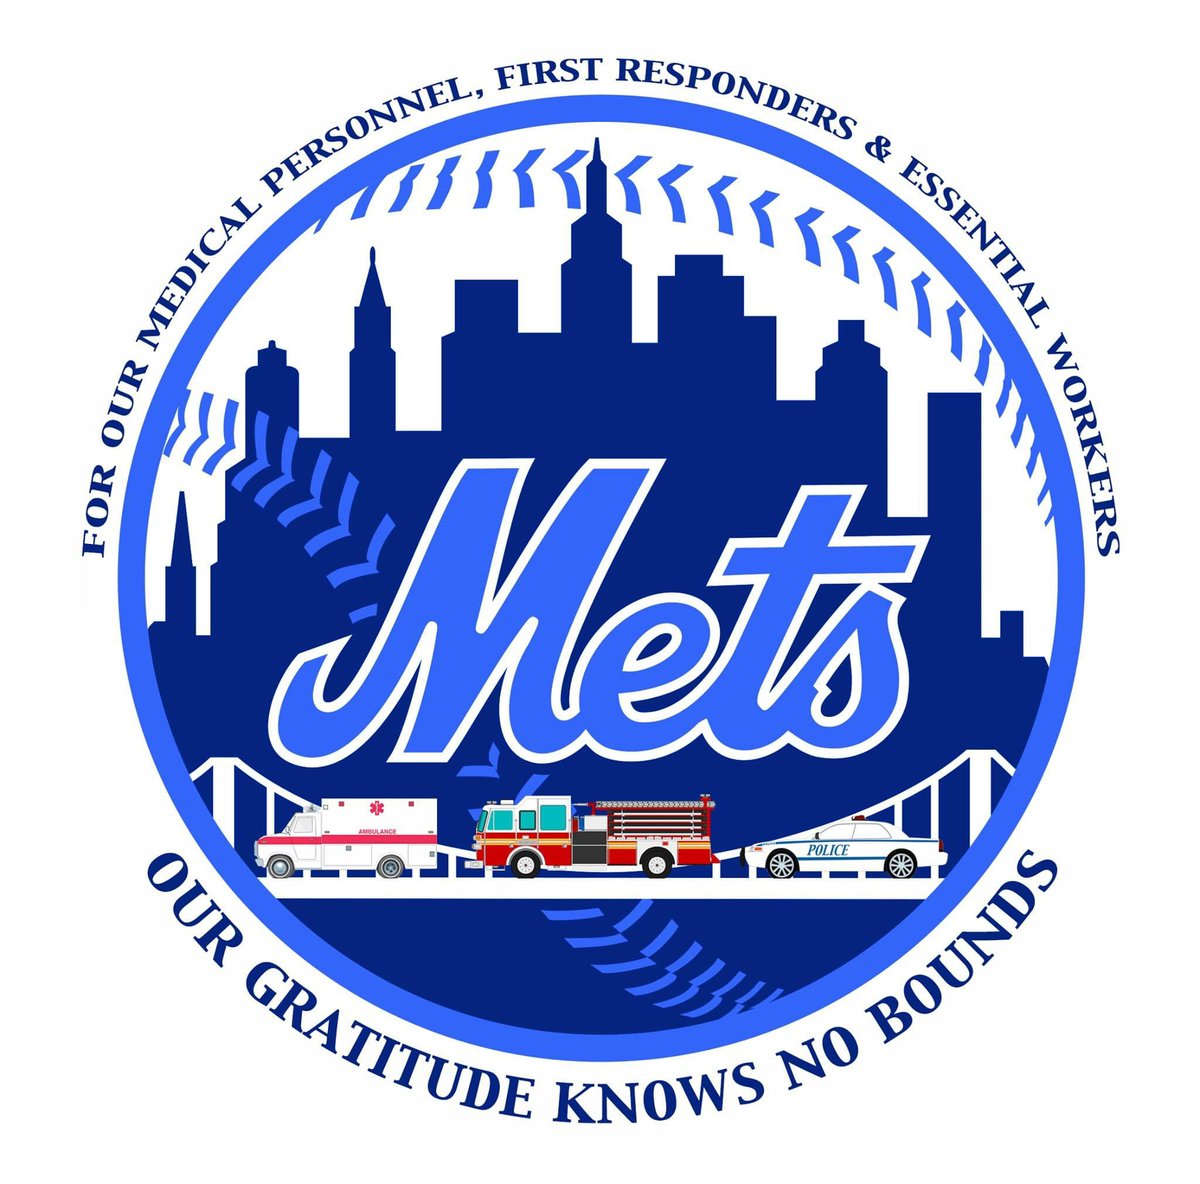 Let's go Mets, but let's not forget <br>http://pic.twitter.com/gbs9kOGyPh